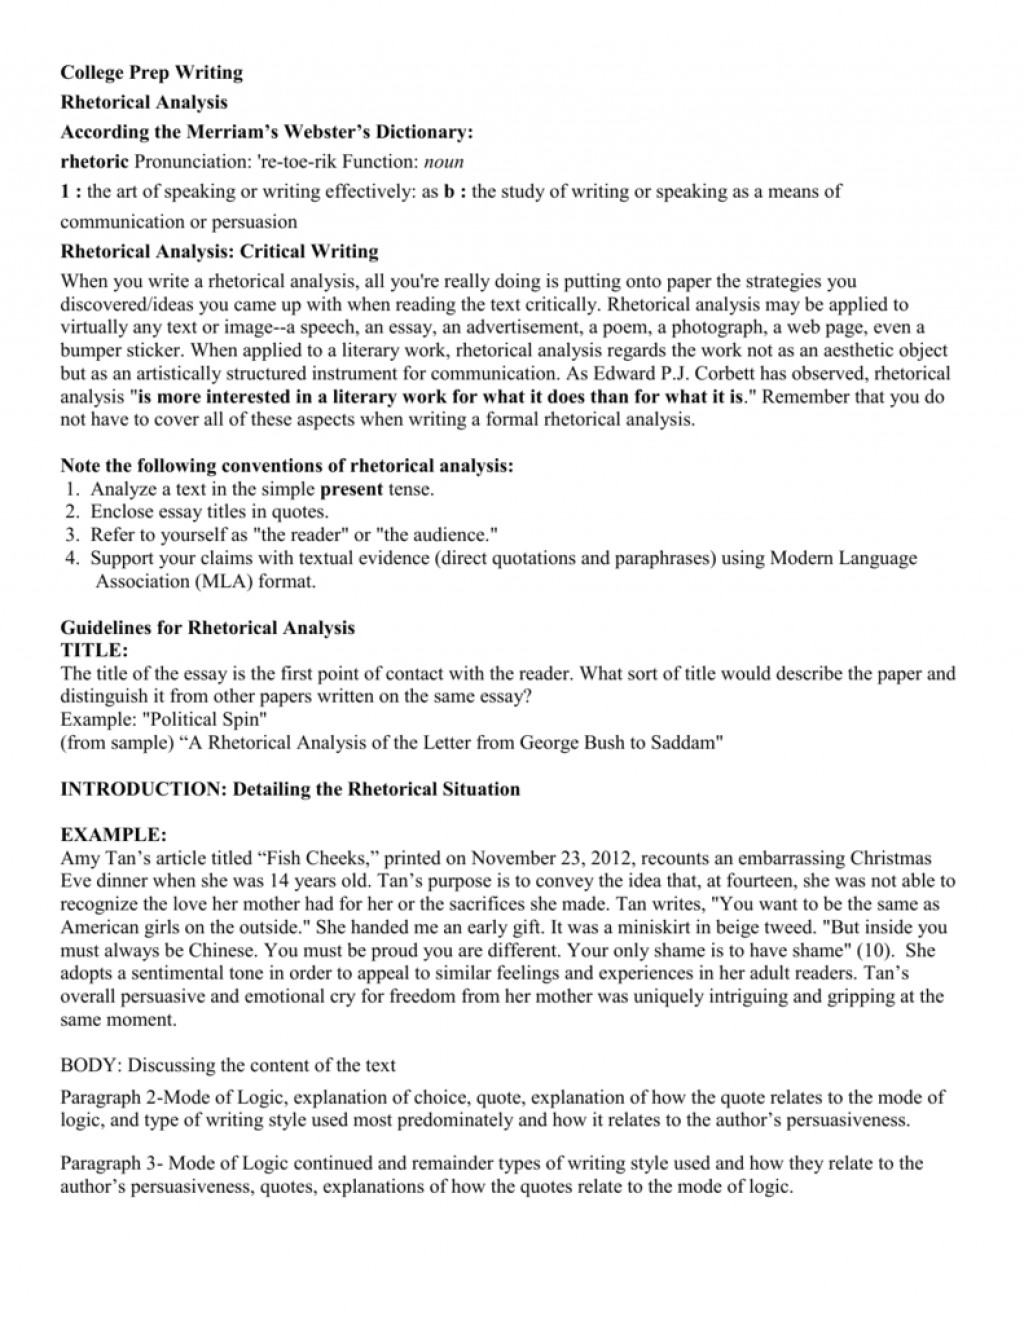 Imperialism thesis cot essay islam